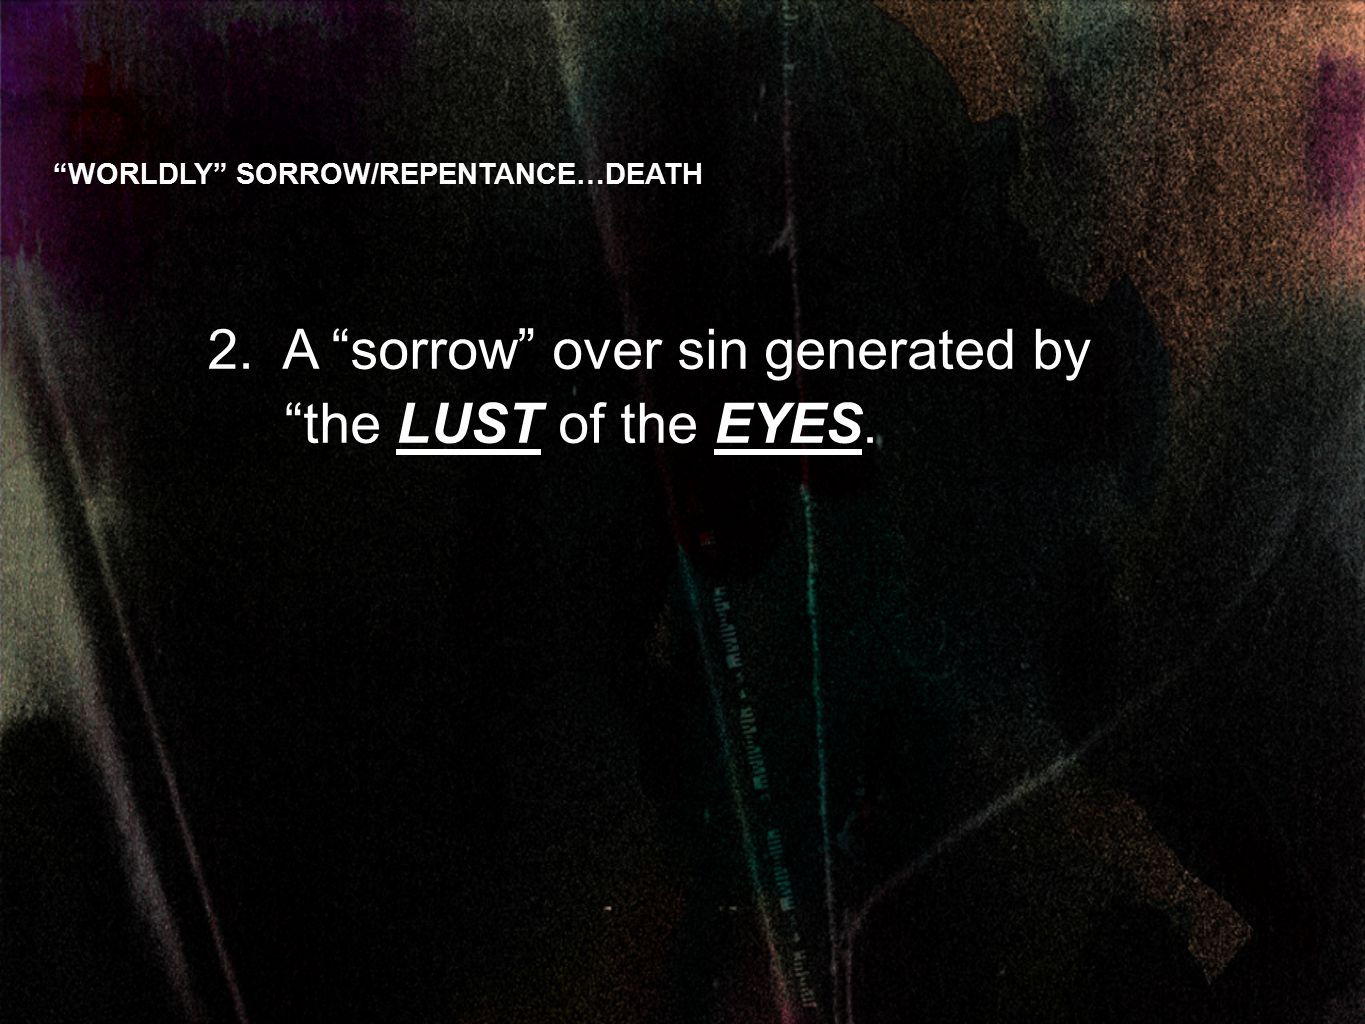 2. A sorrow over sin generated by the LUST of the EYES. WORLDLY SORROW/REPENTANCE…DEATH